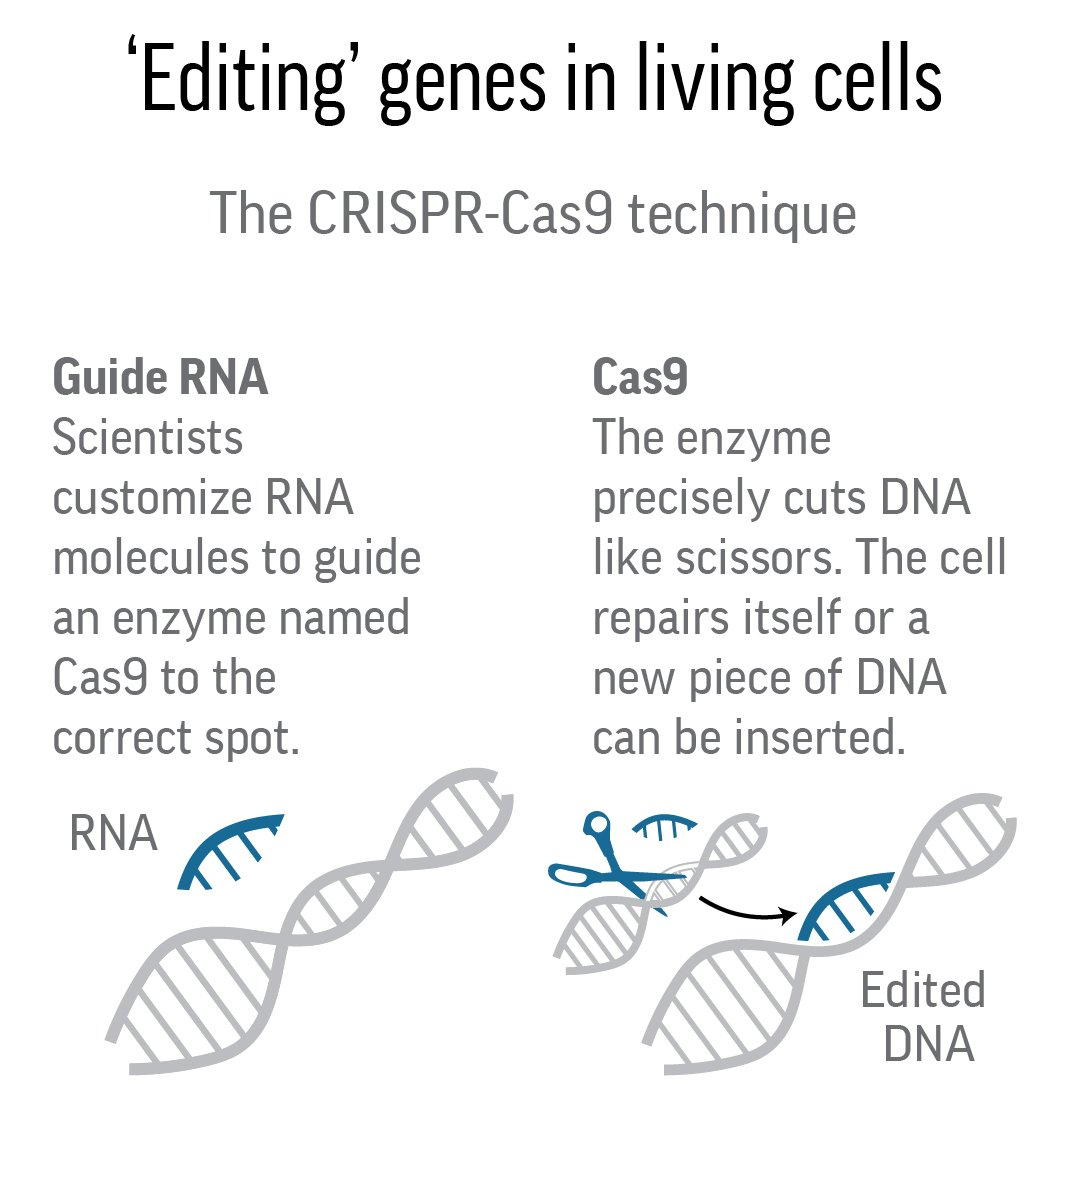 Science Says: Gene editing widely used in range of research